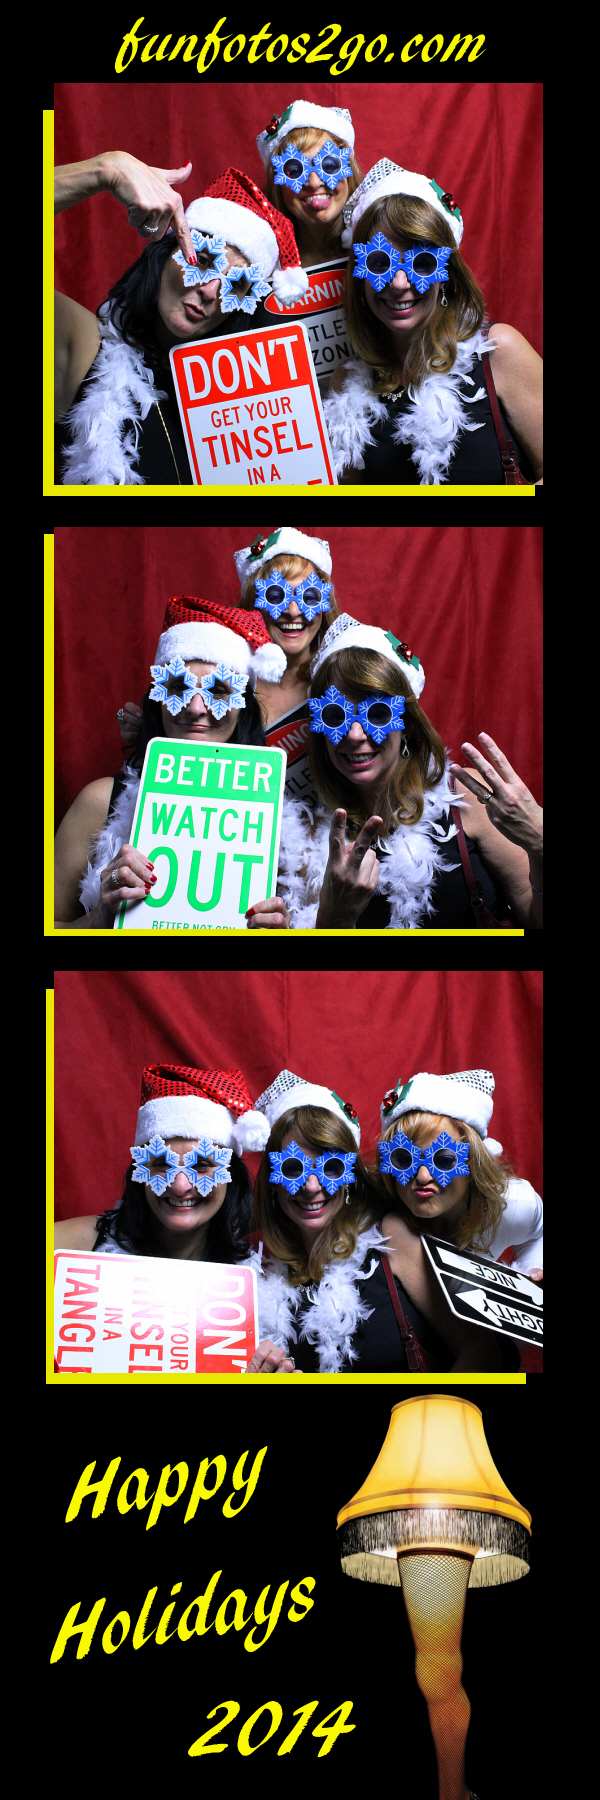 Fun Fotos 2 Go Photo Booths